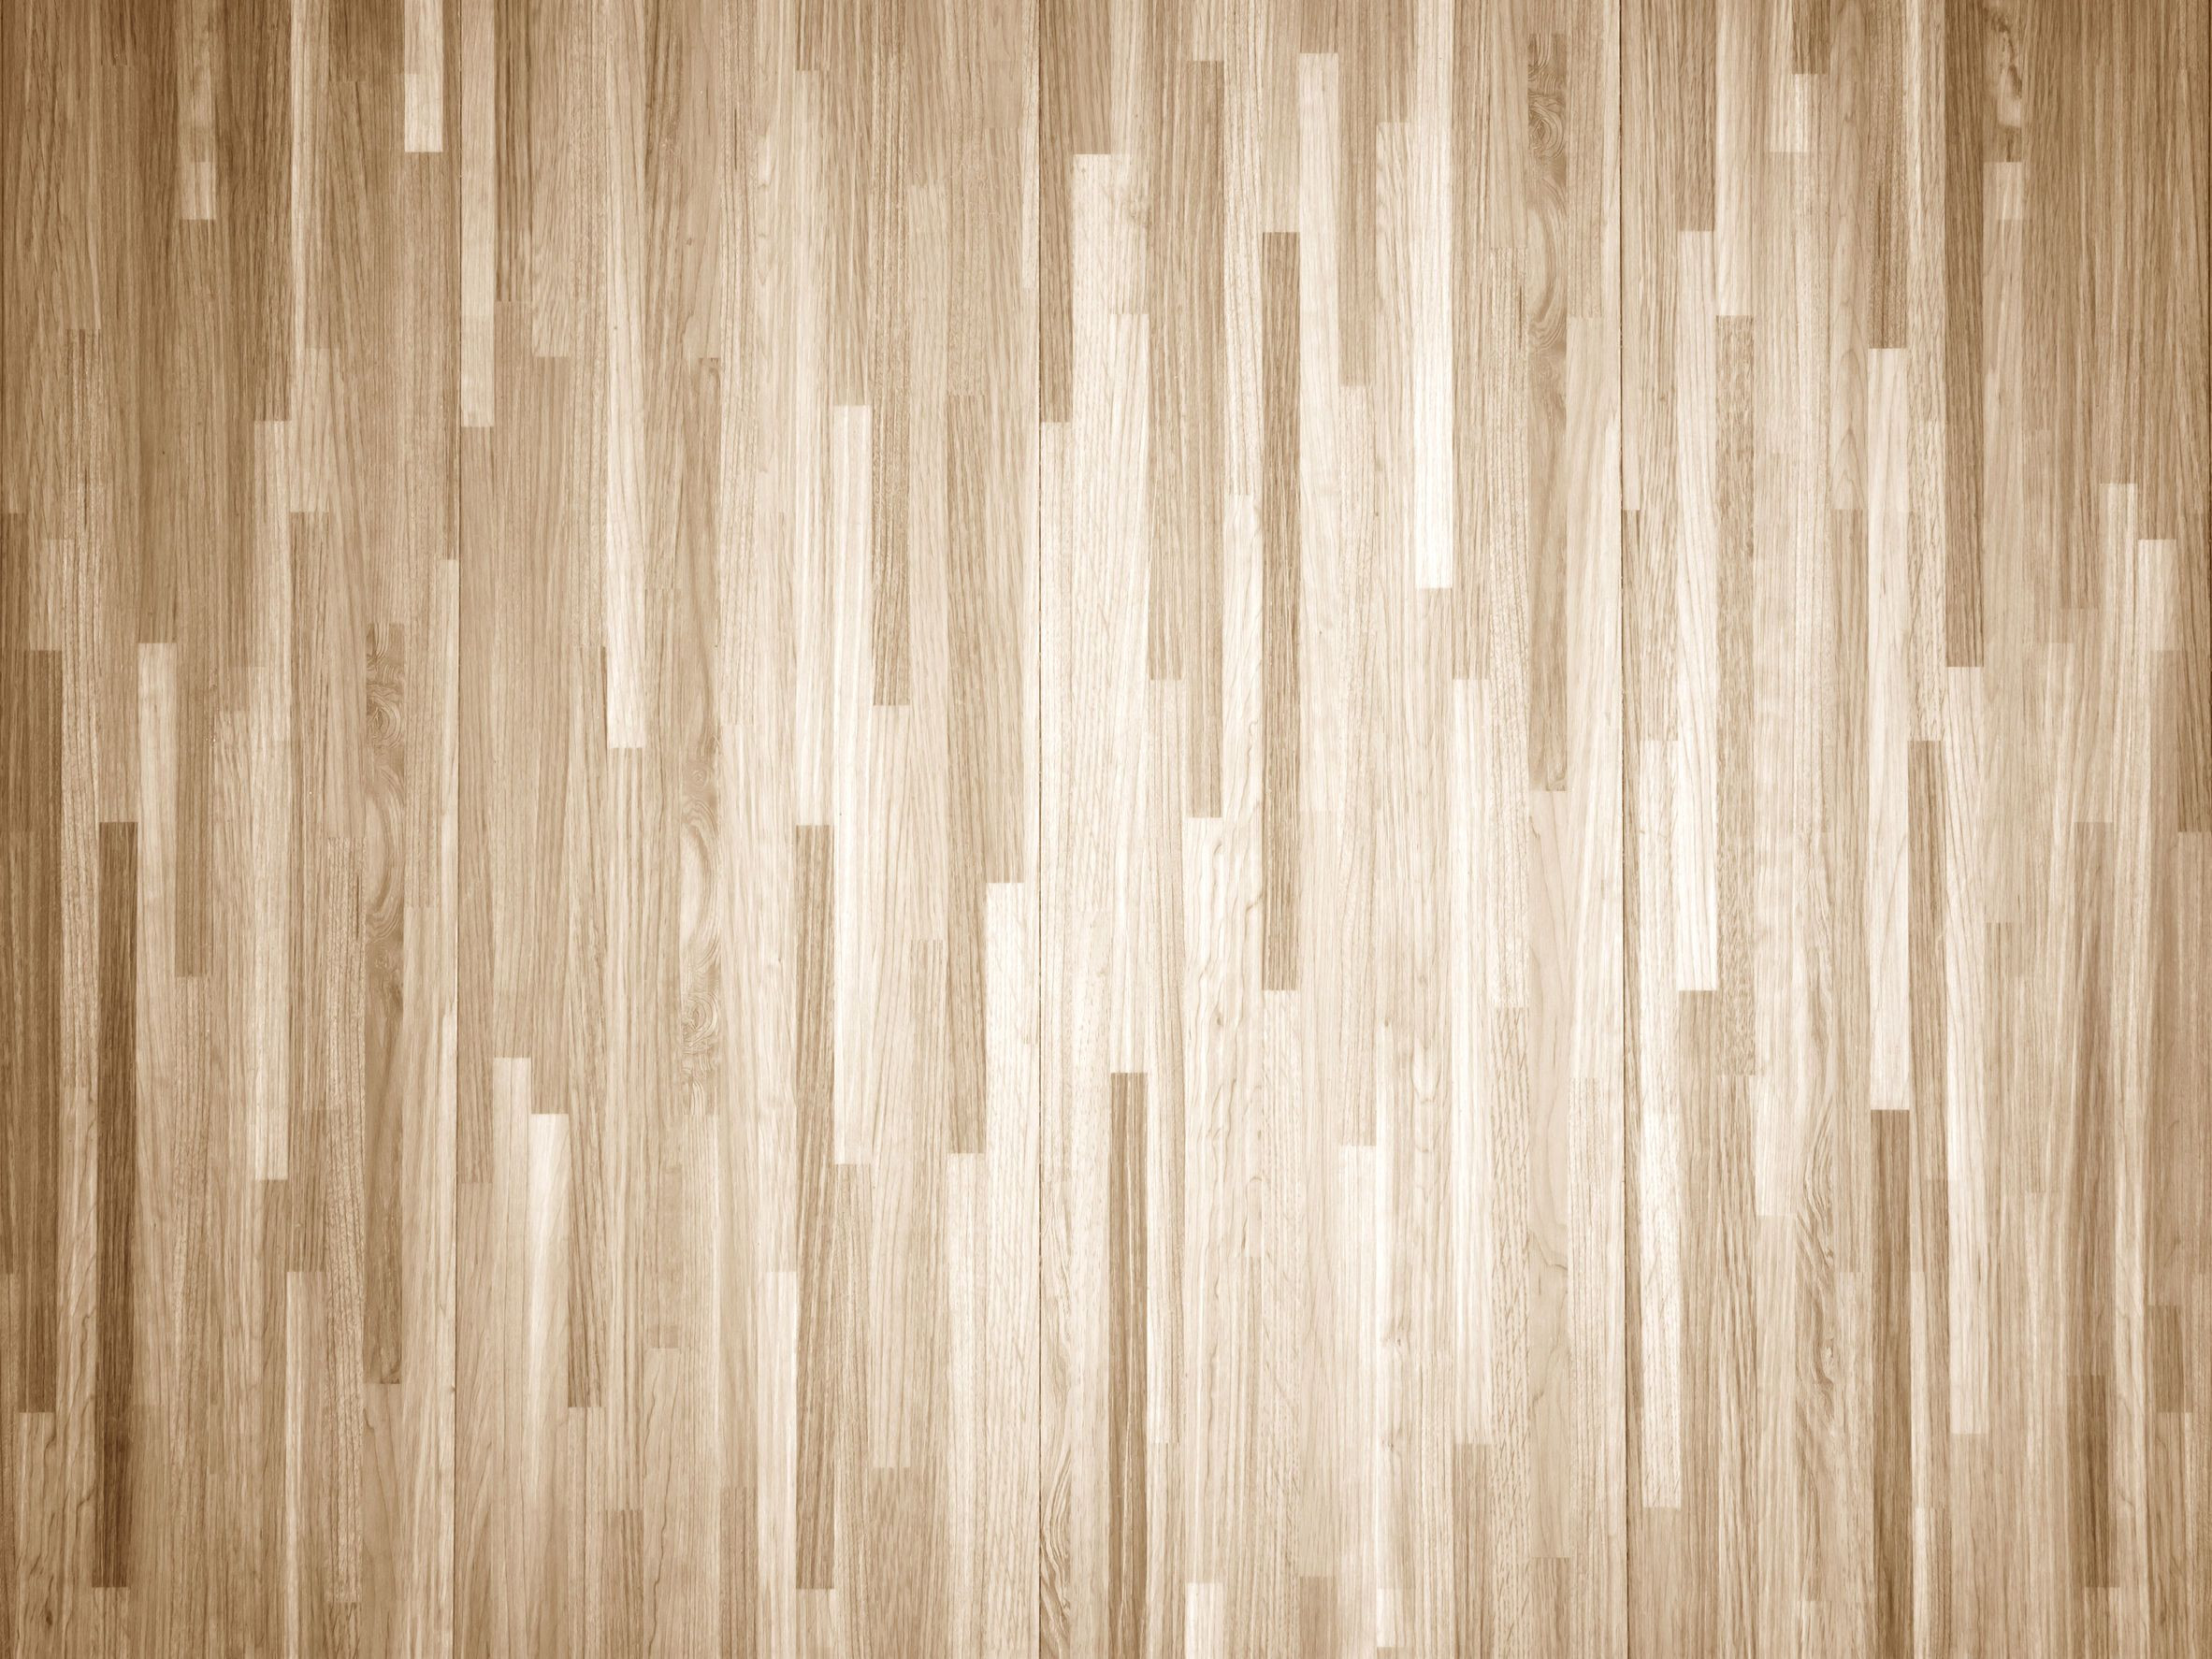 bamboo v hardwood flooring of how to chemically strip wood floors woodfloordoctor com for you